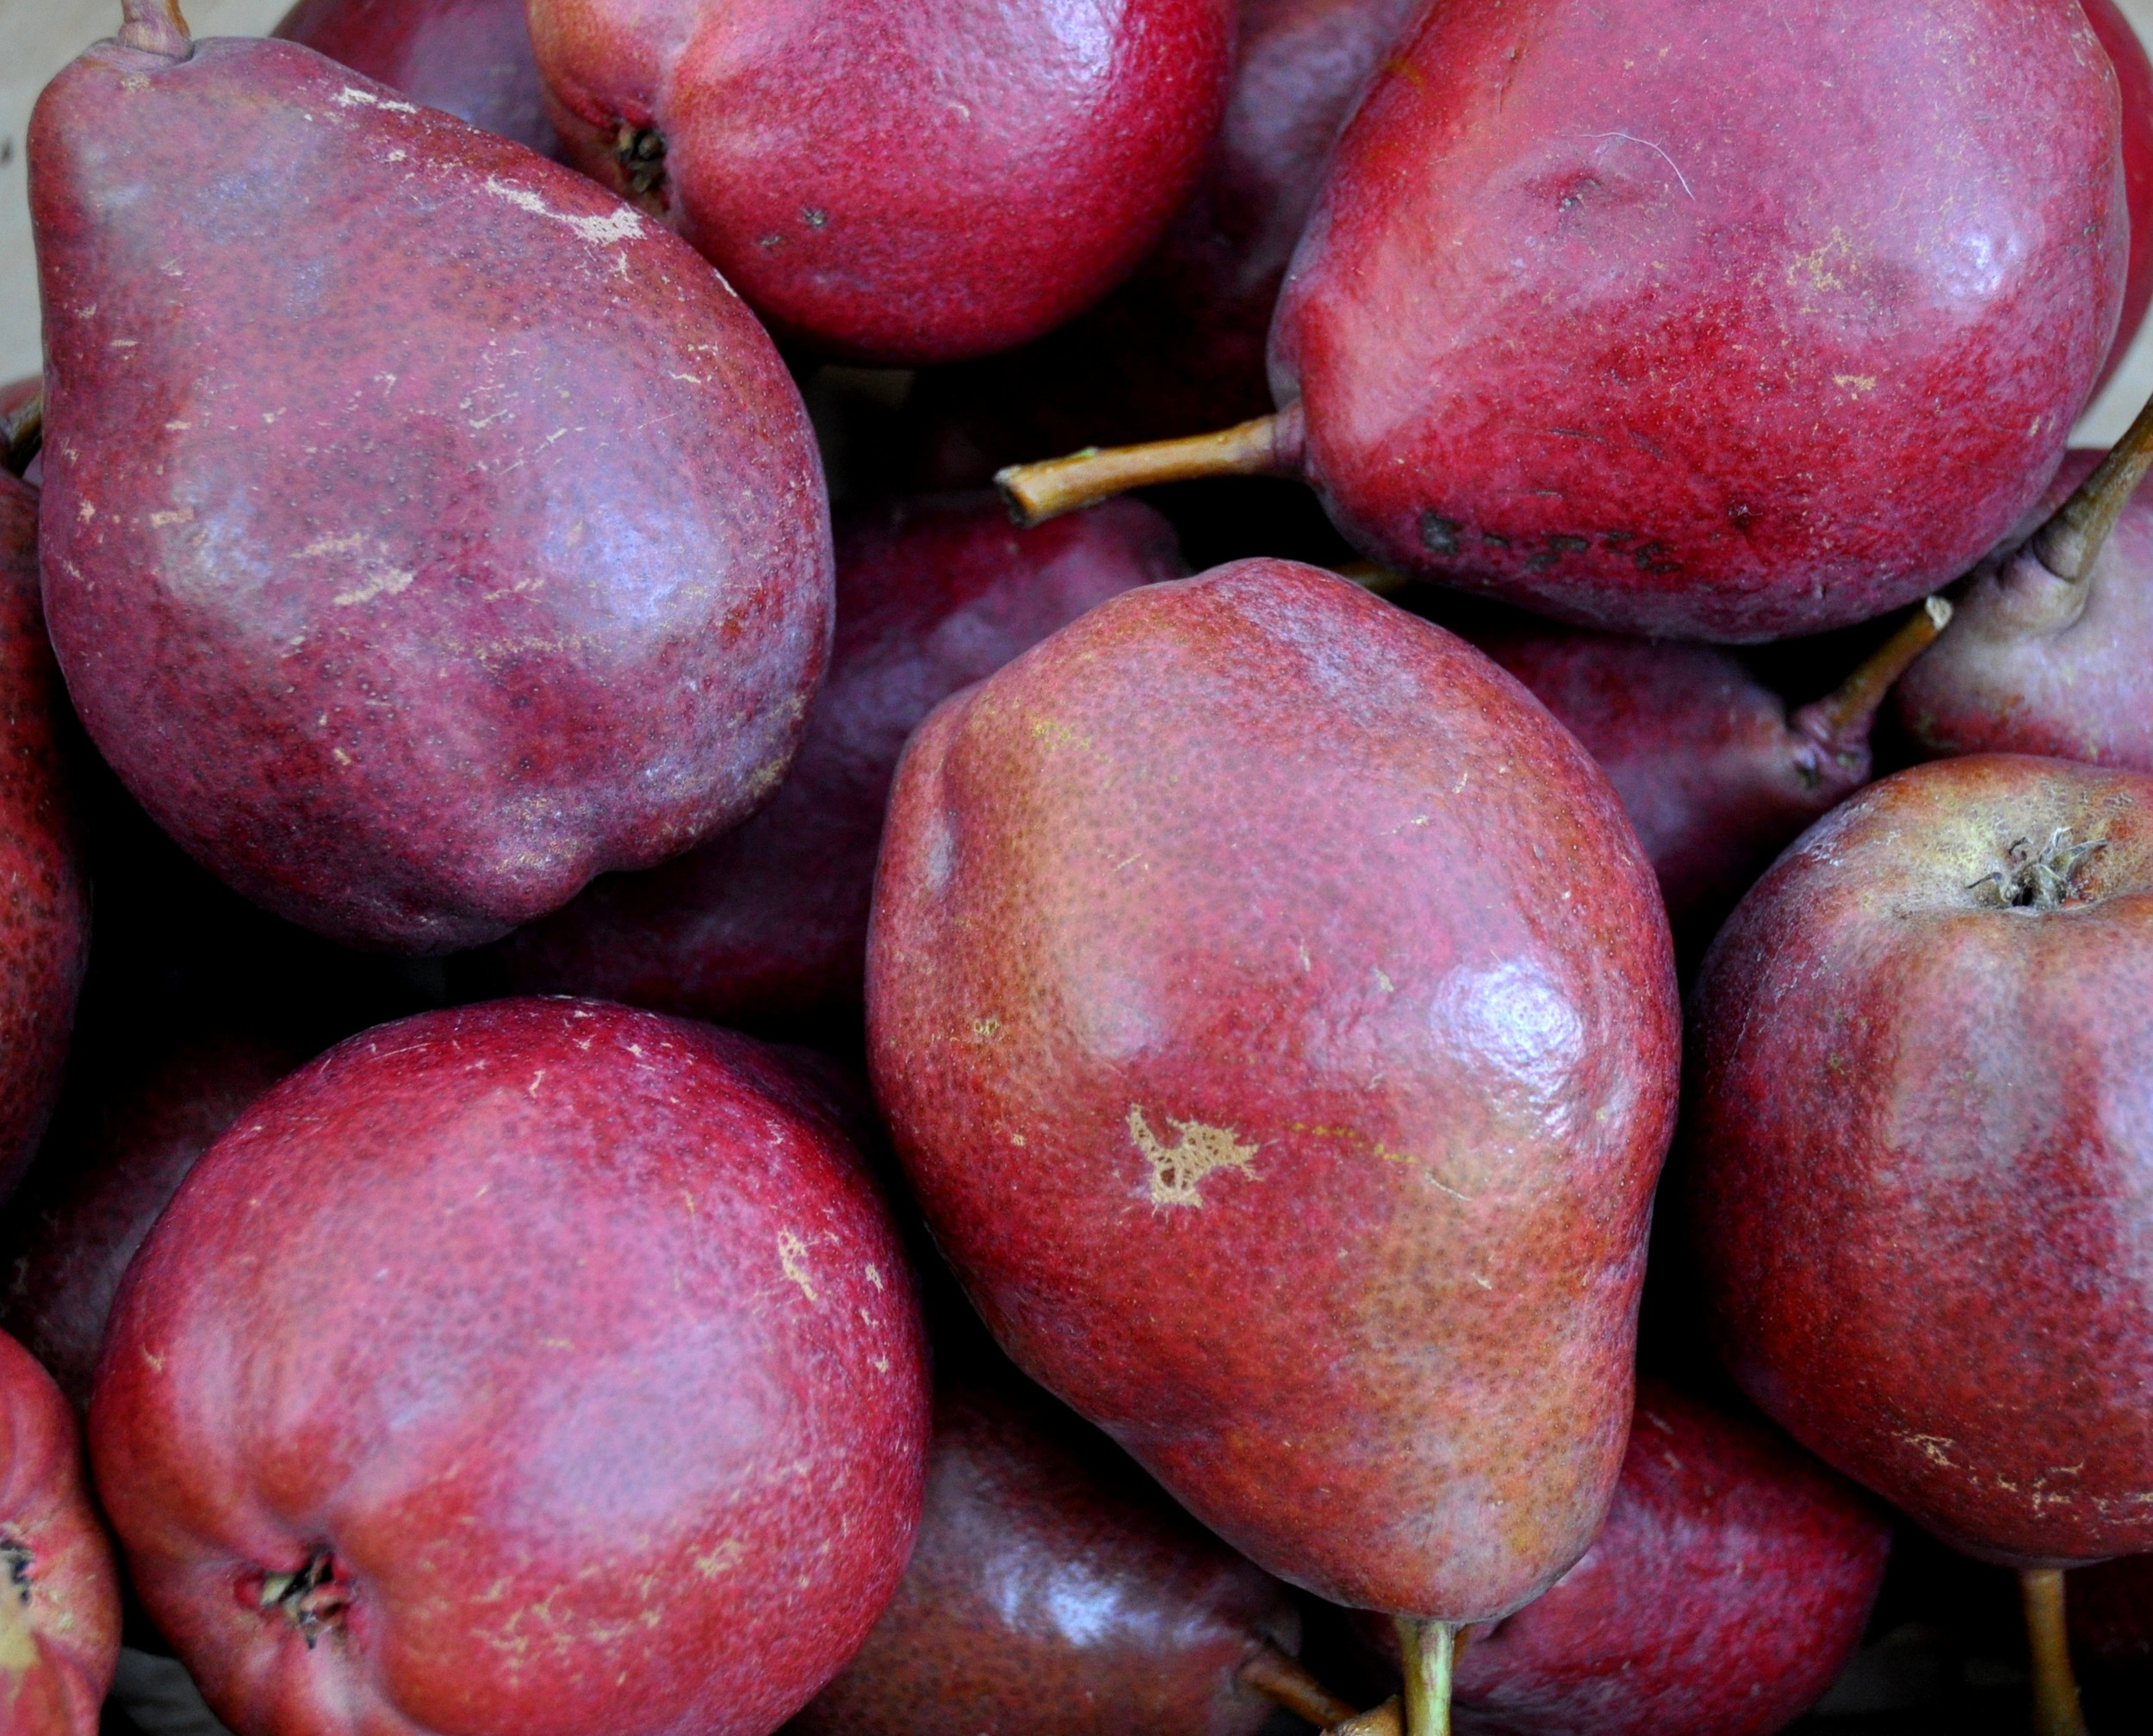 Purple Goddess pears from Jerzy Boyz. Photo copyright 2012 by Zachary D. Lyons.